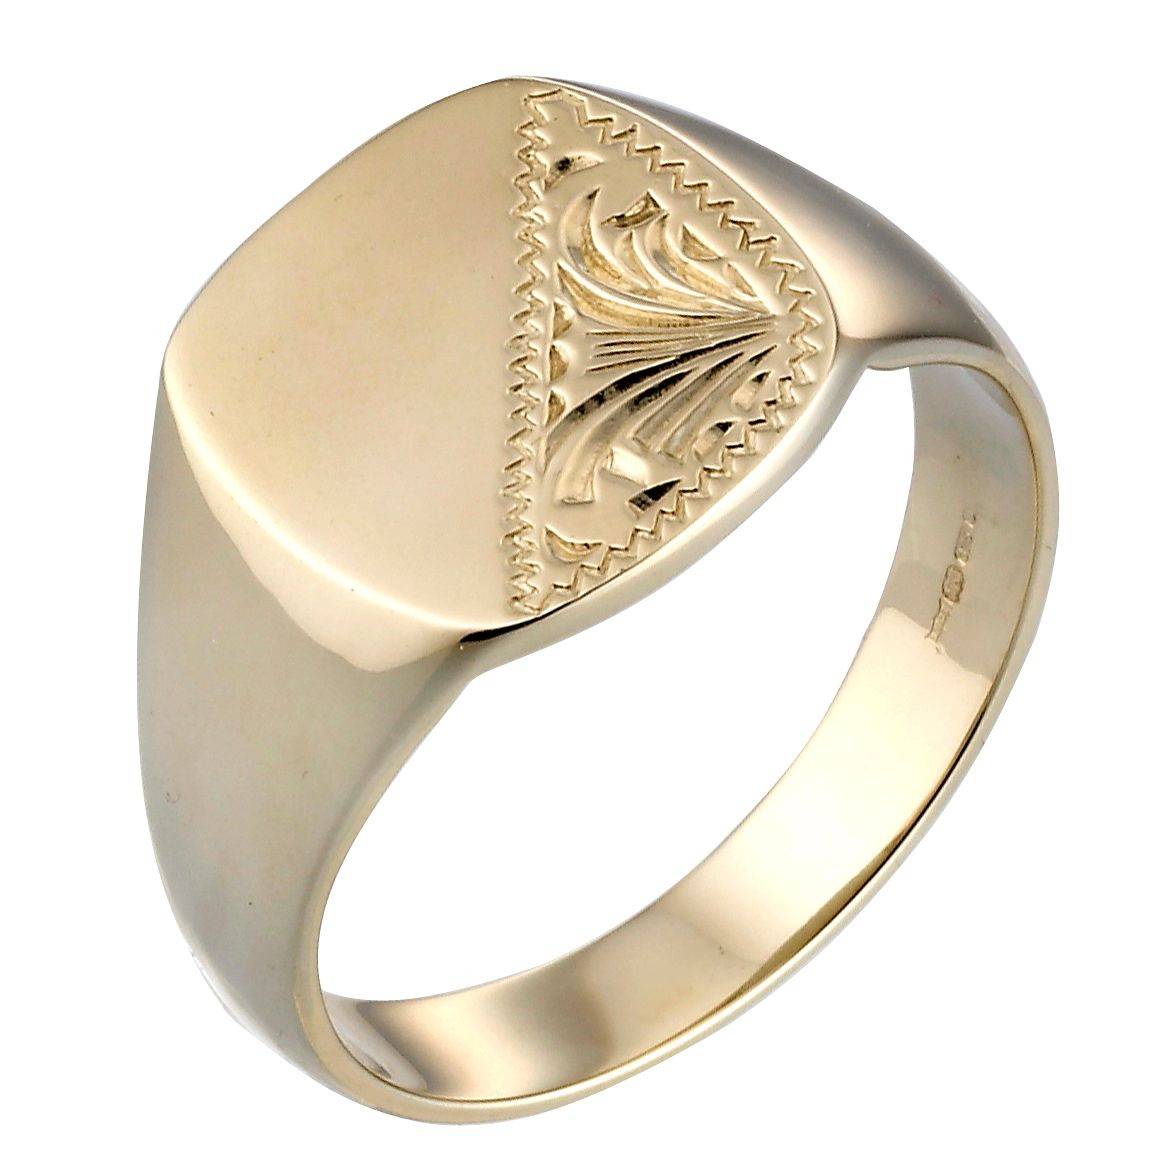 rose woman sterling men handmade rings sacred and for silver signet quality ring